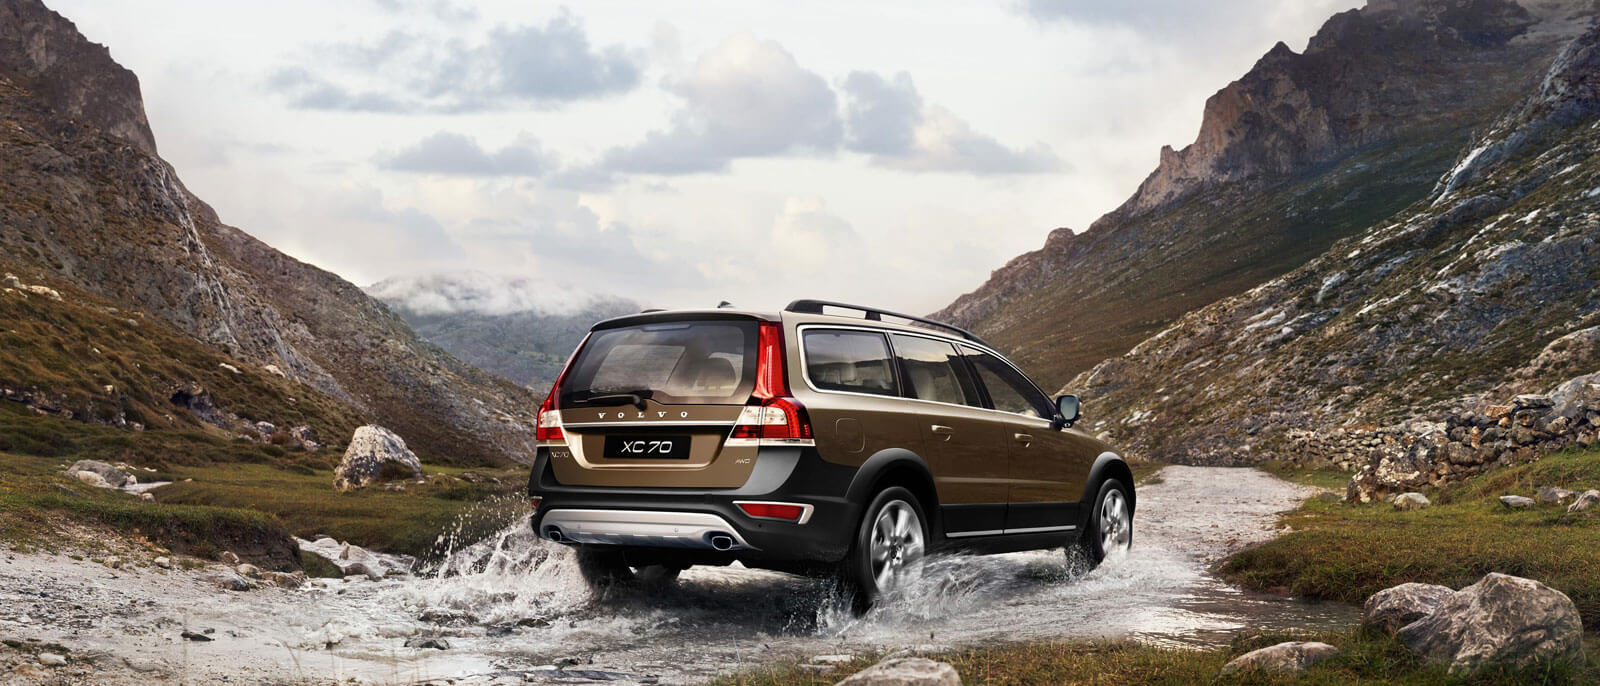 2016 Volvo XC70 rear view